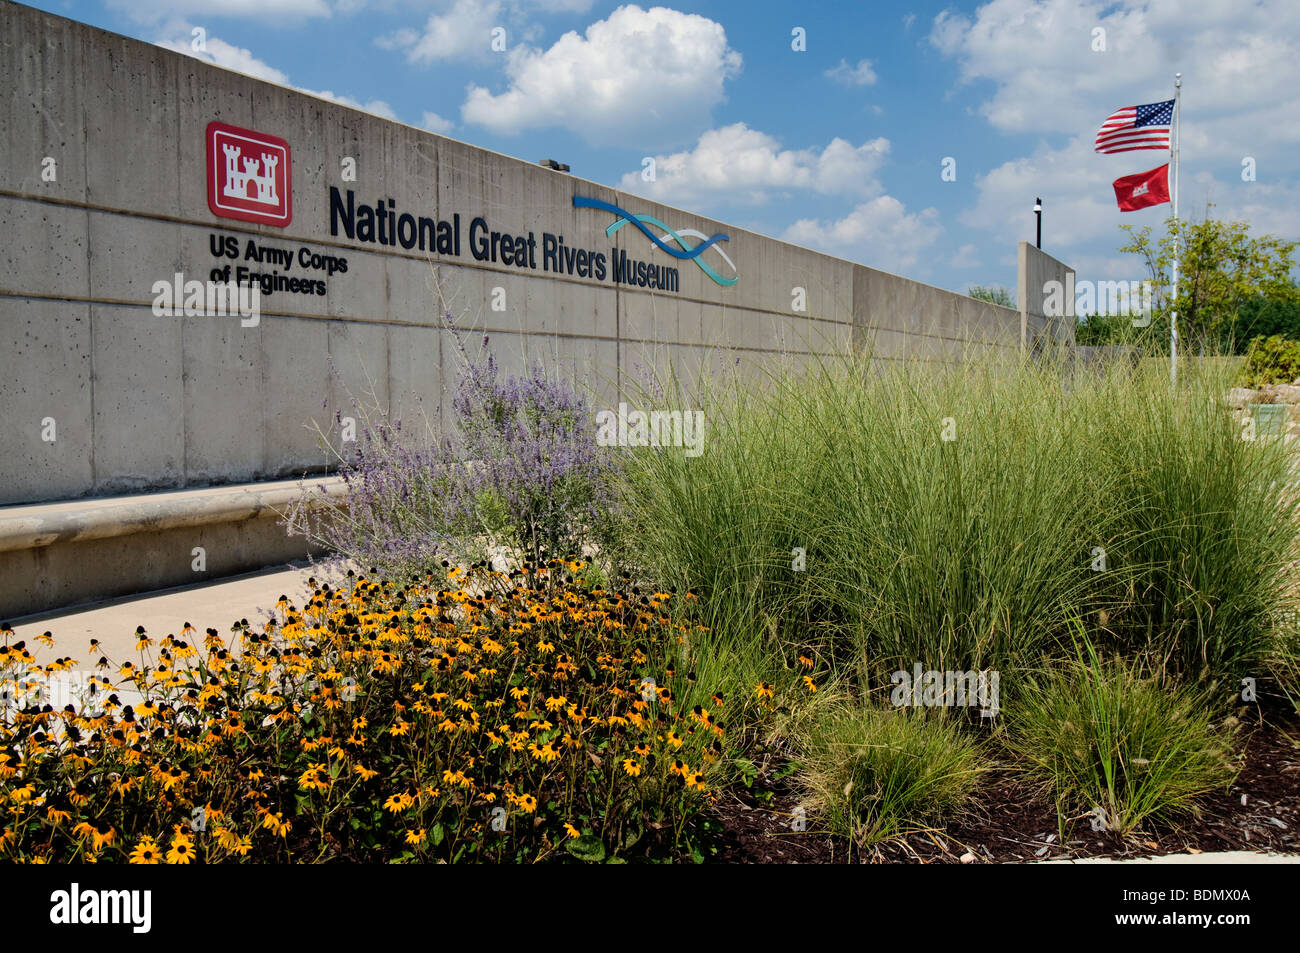 The National Great Rivers Museum on the Meeting of the Great Rivers National Scenic Byway in Alton, Illinois - Stock Image